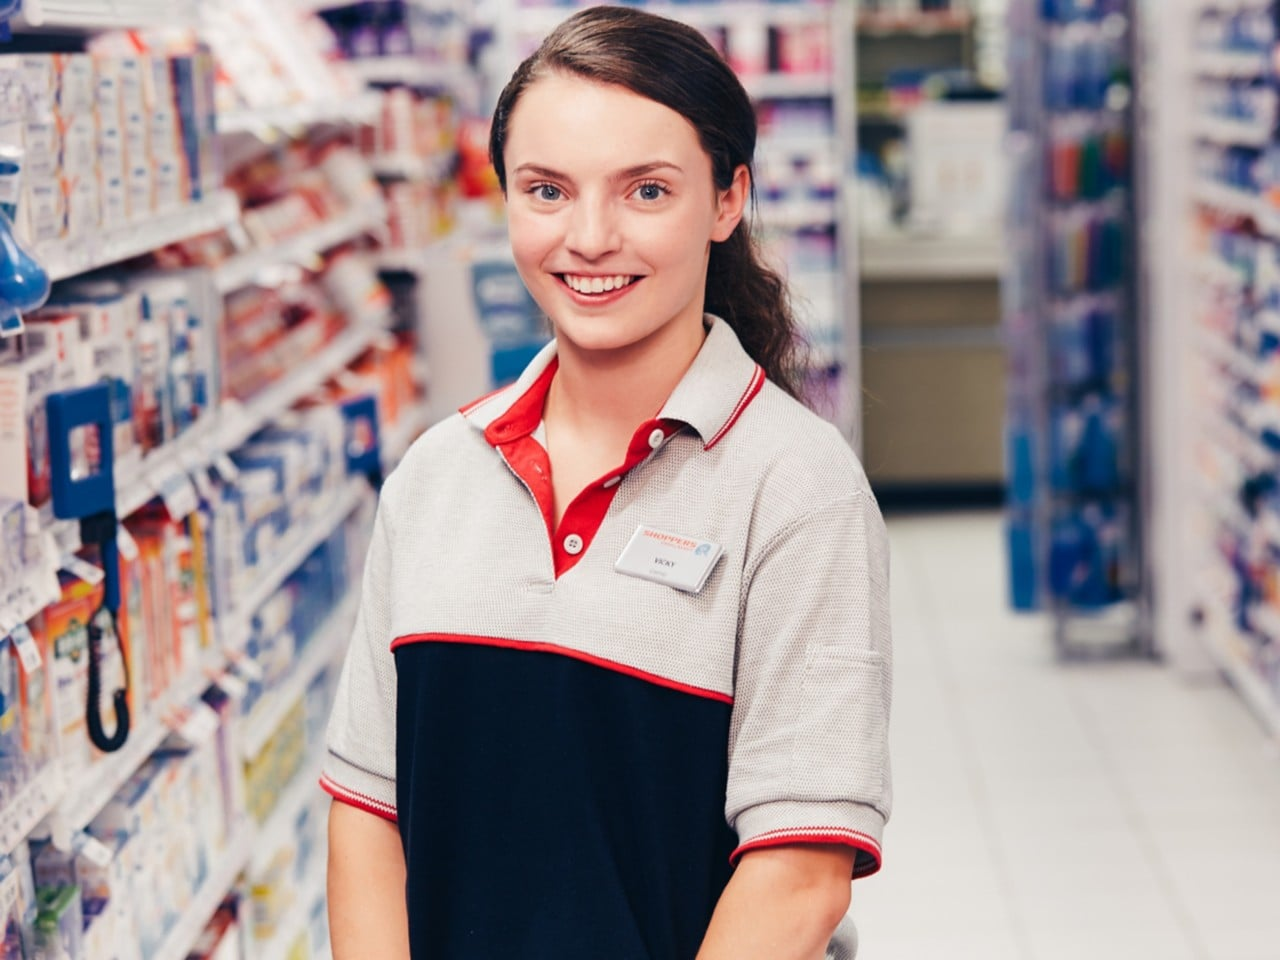 Smiling Shoppers Drug Mart empoyee wearing grey polo shirt.